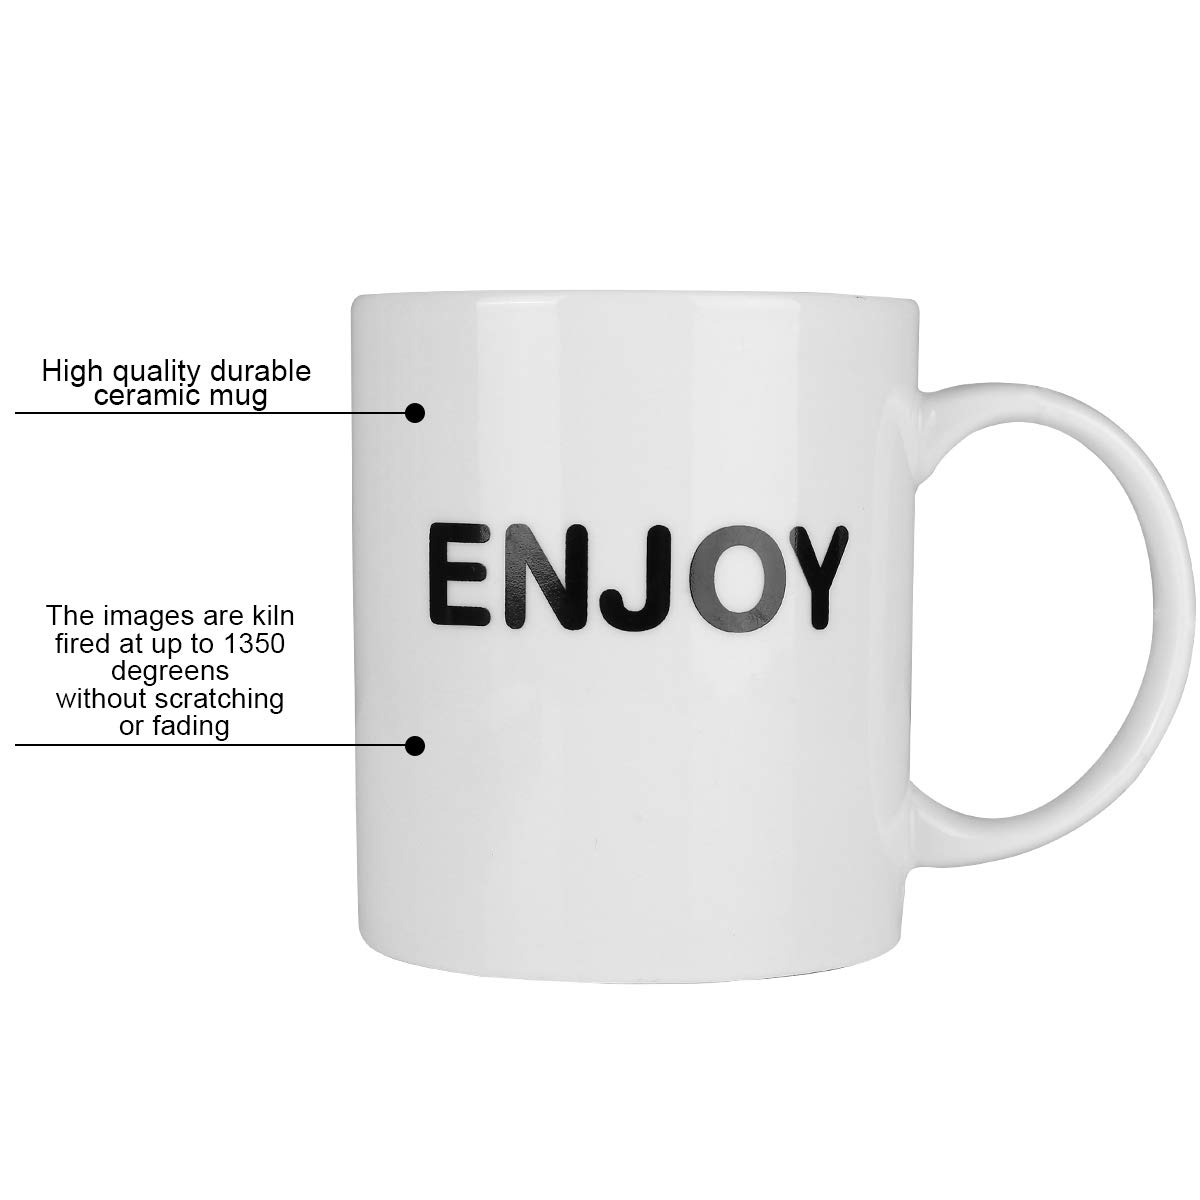 HANHAOPEAK Coffee Mug, 11oz Funny Coffee Mug: Enjoy, Unique Ceramic Novelty Holiday Christmas Hanukkah Gift for Men and Women Who Love Tea Mugs Coffee Cups, Suitable for Office and Home by HANHAOPEAK (Image #2)